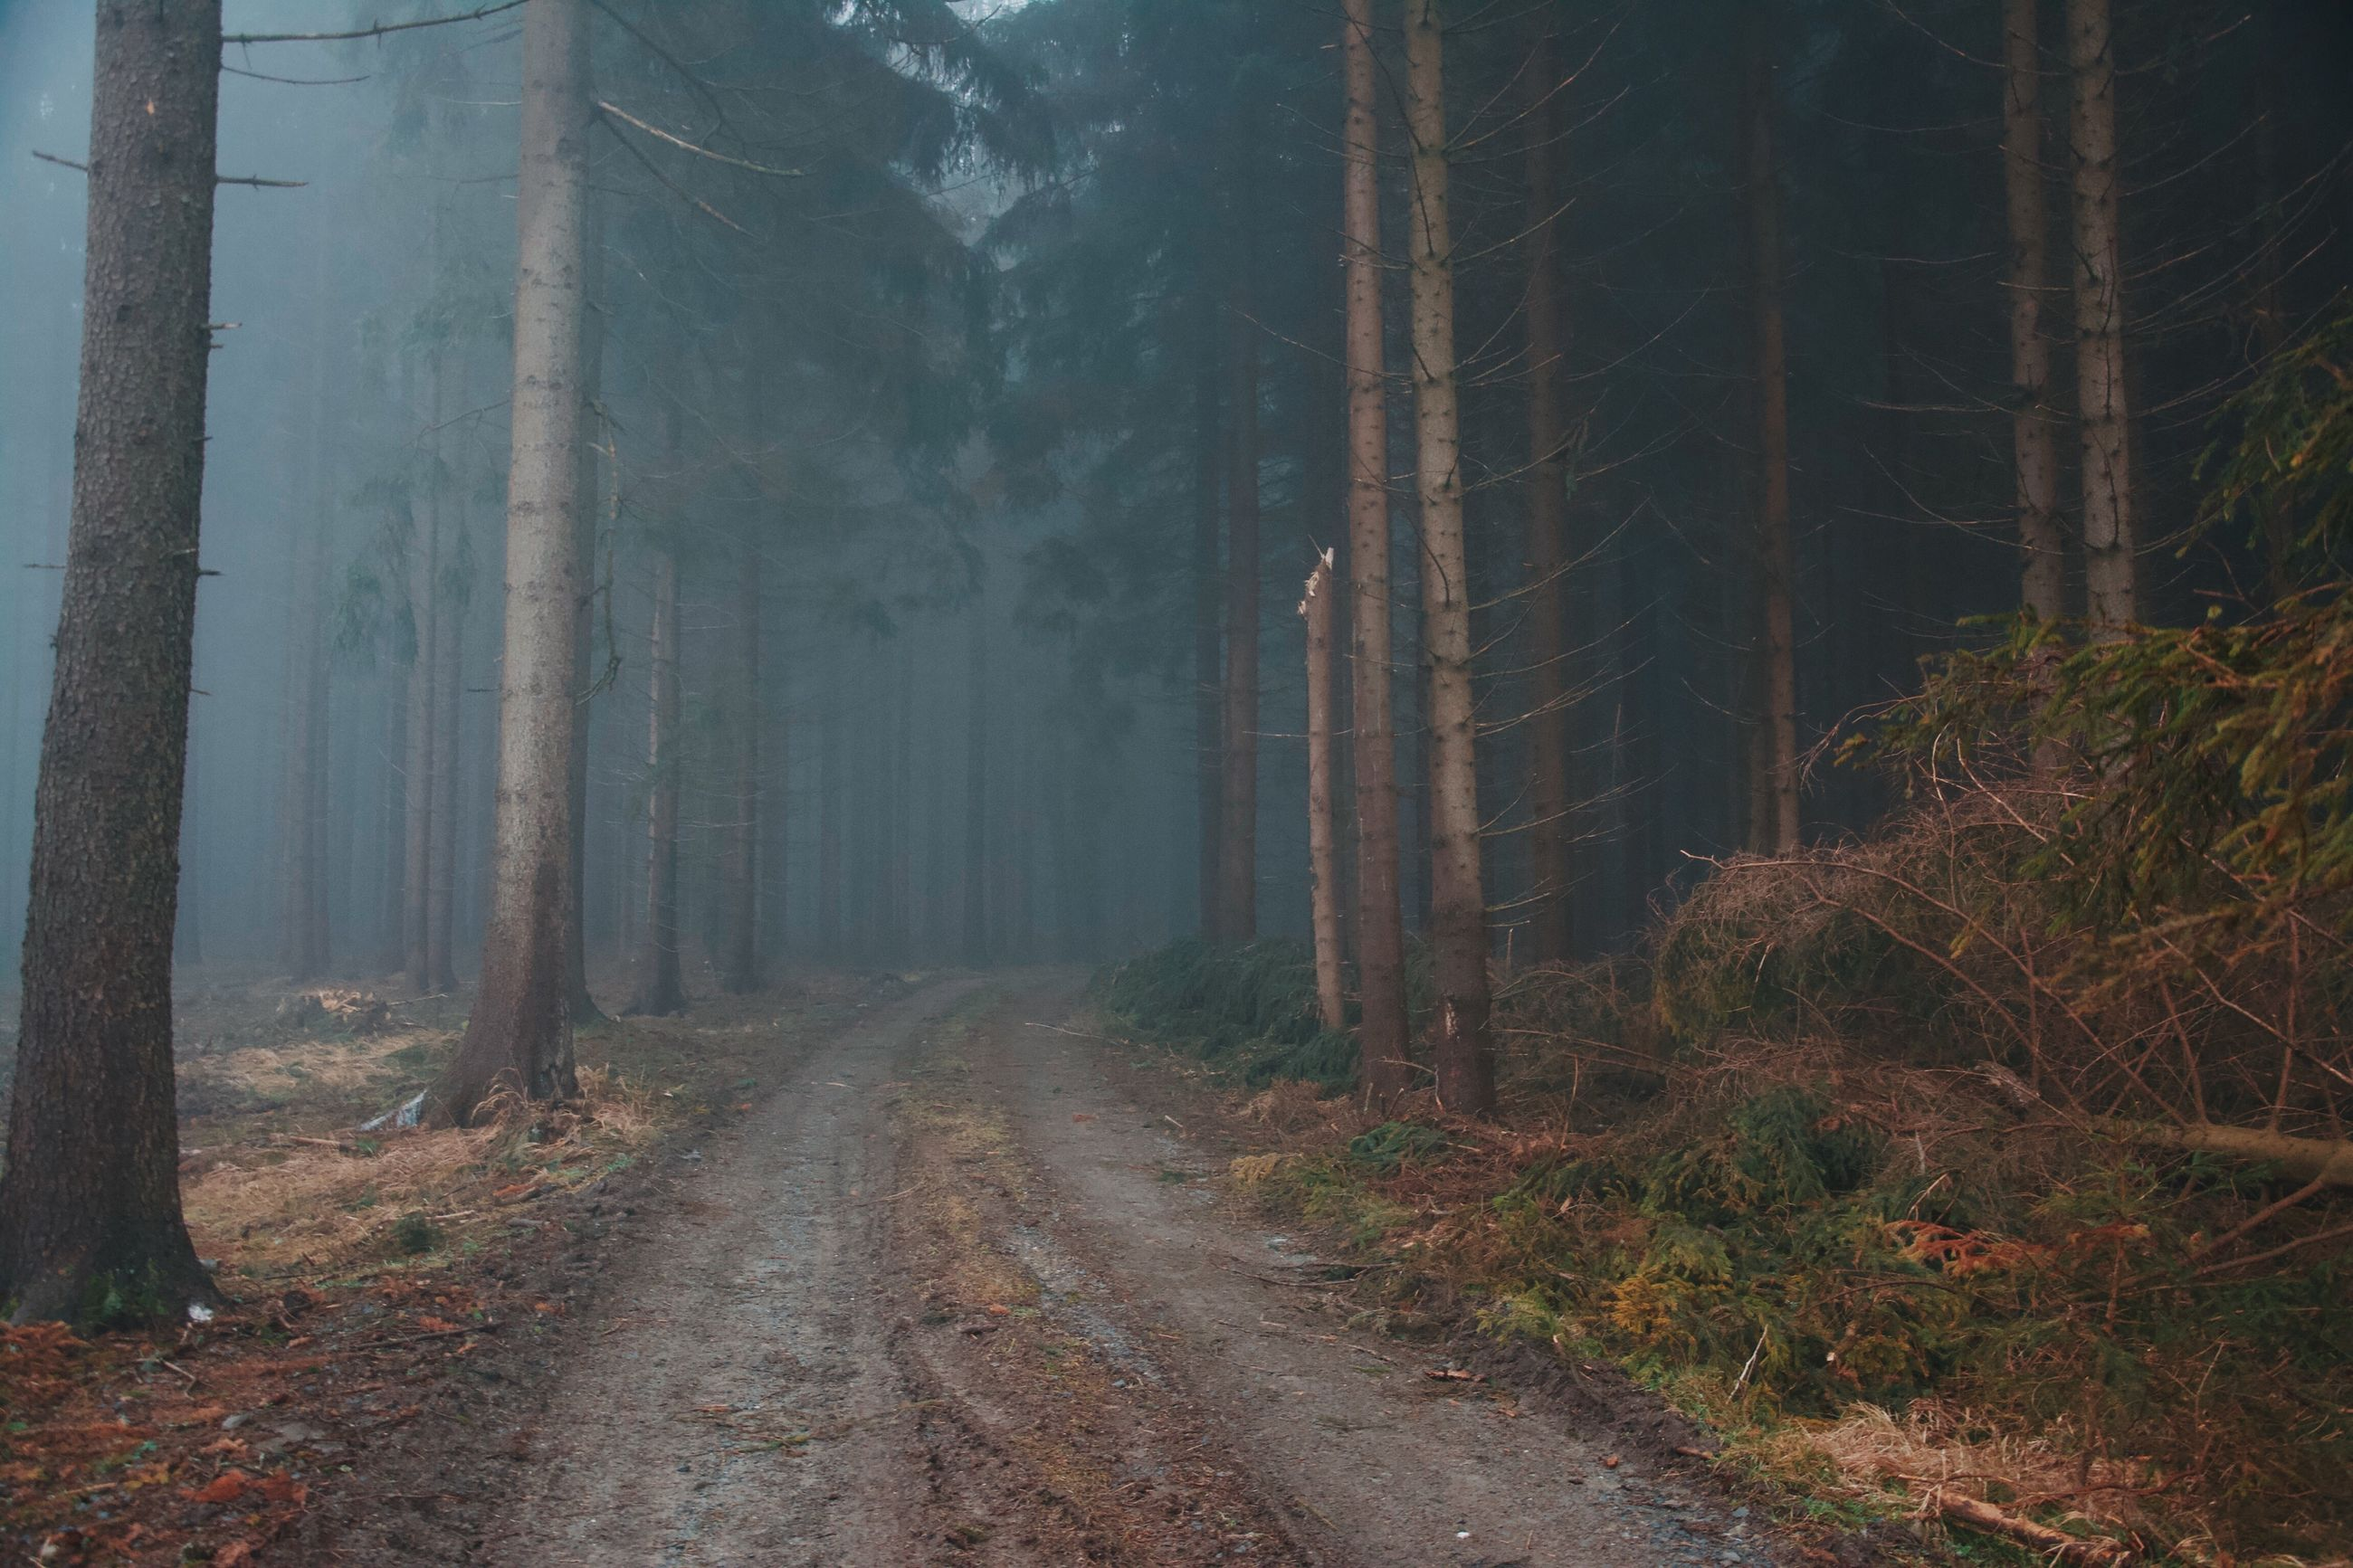 forest, tree, tree trunk, nature, no people, tranquility, outdoors, fog, scenics, landscape, beauty in nature, day